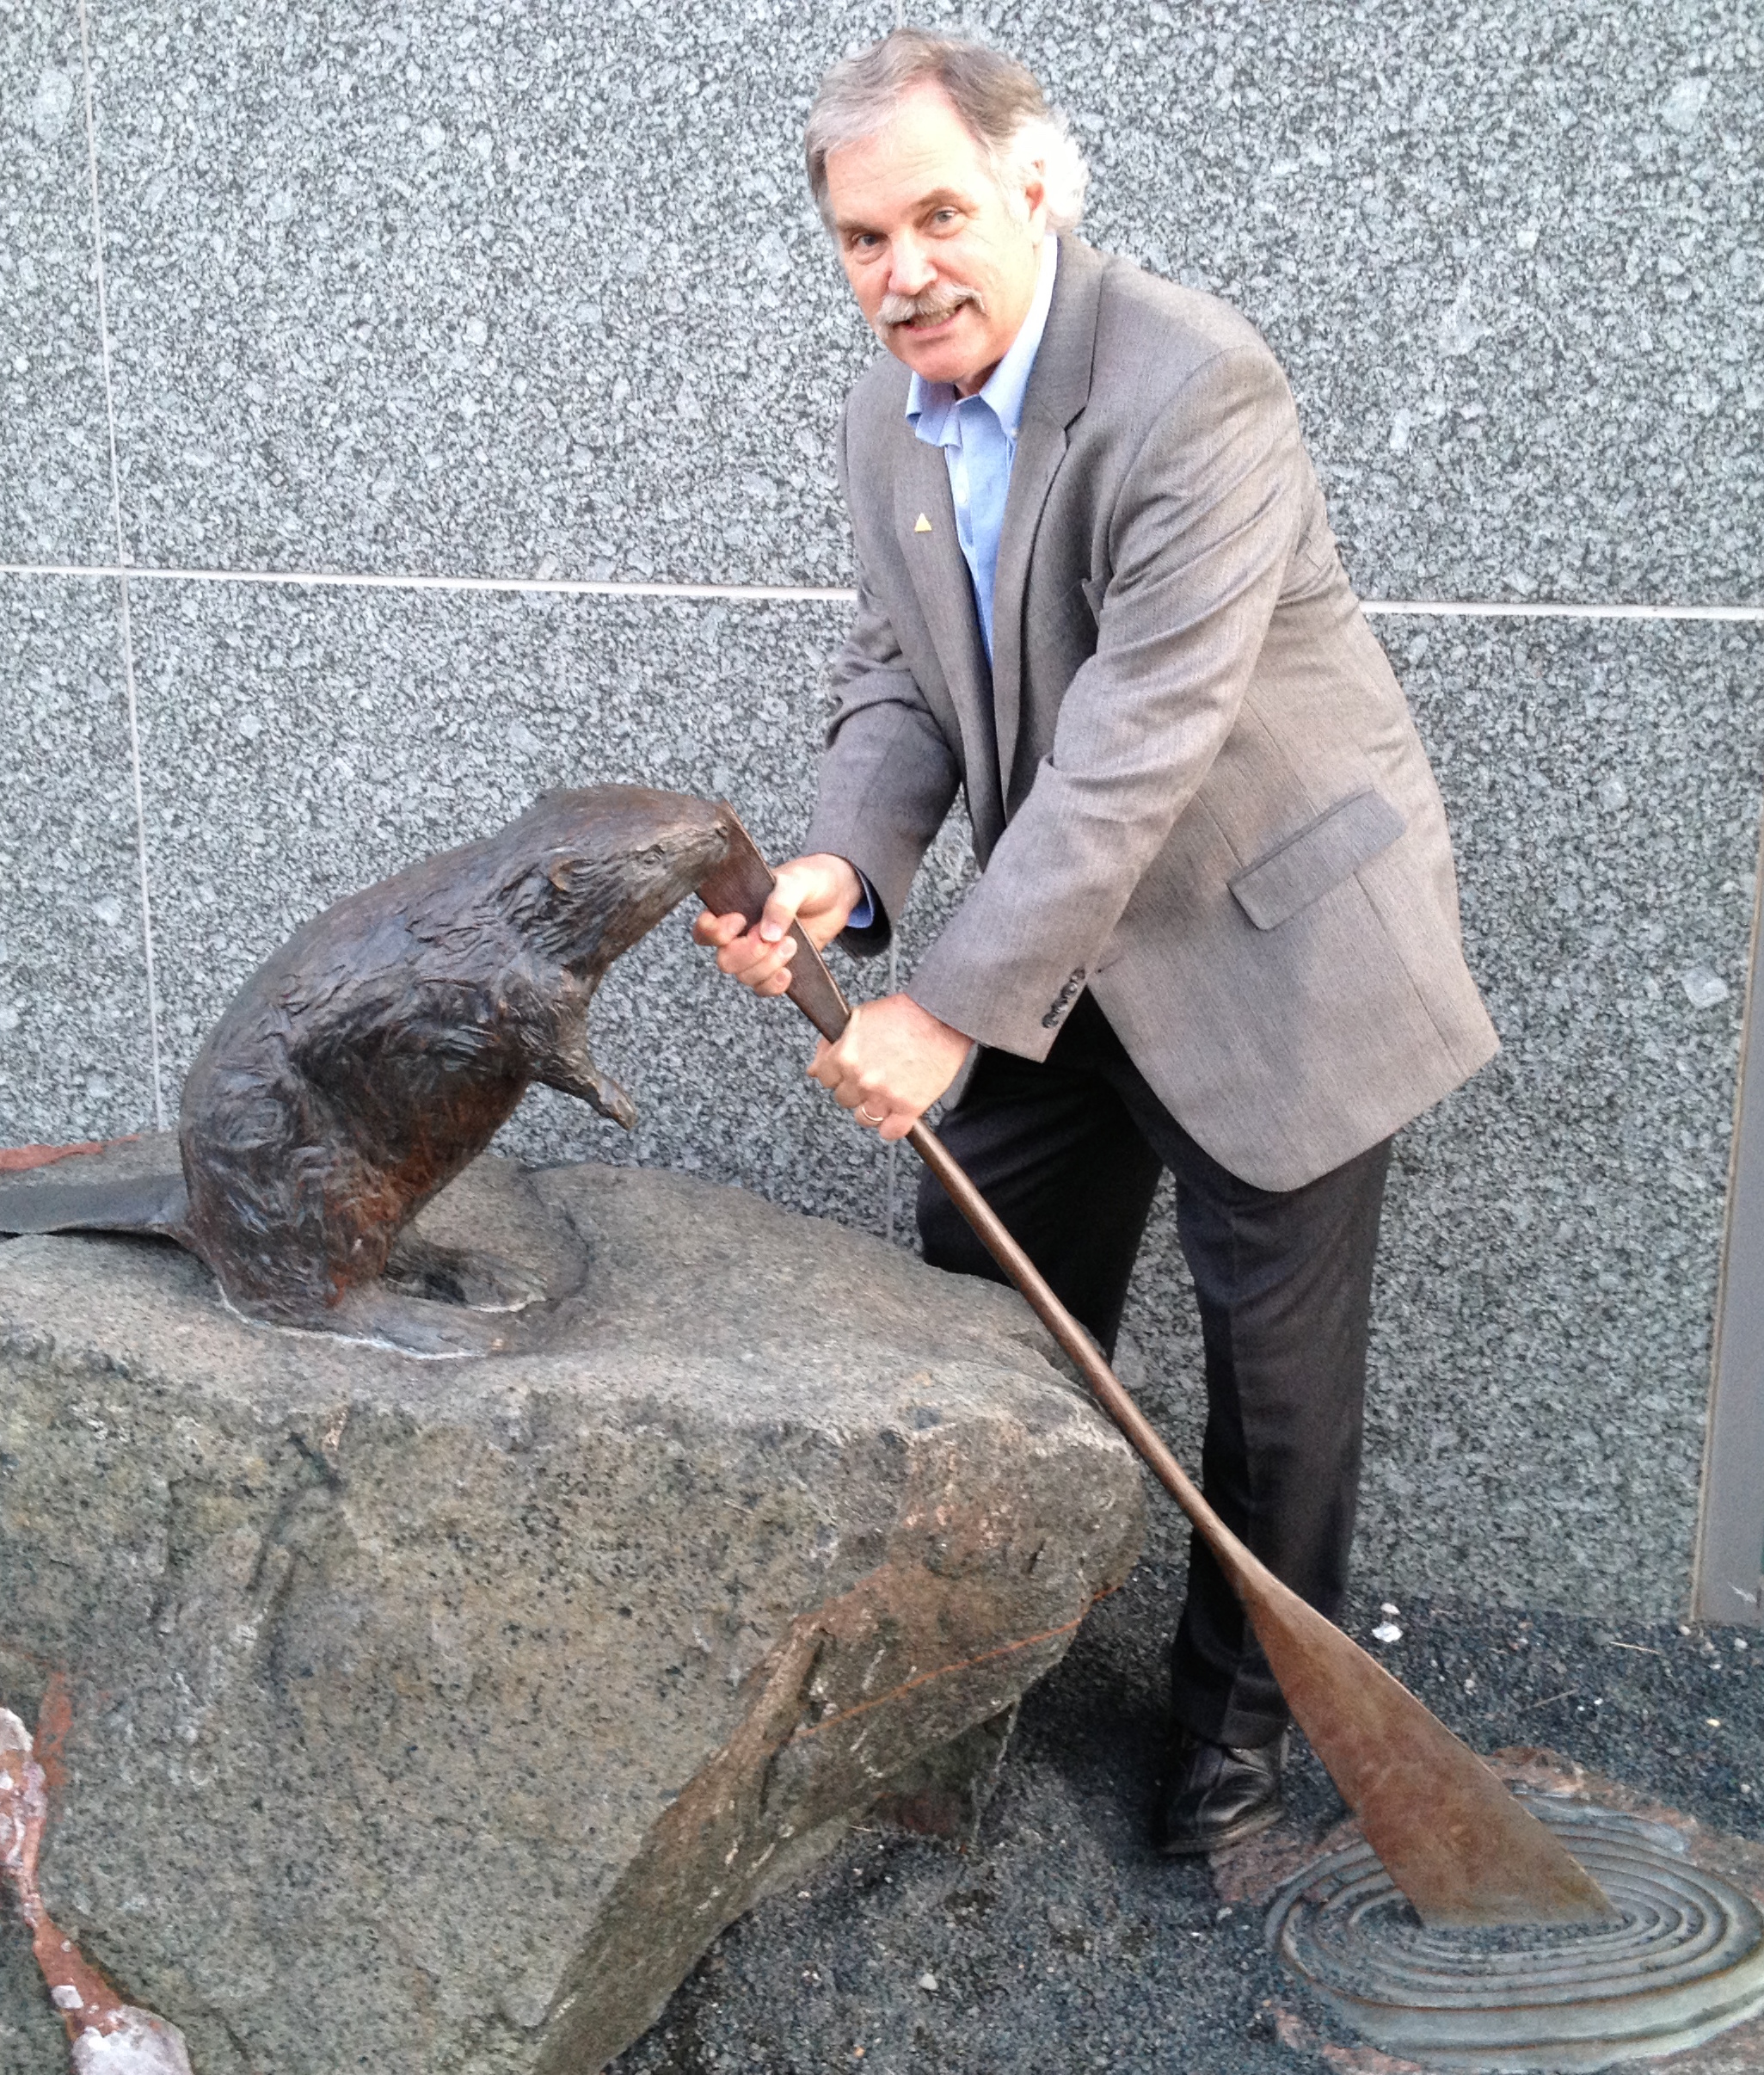 Brooks with Beaver Statue